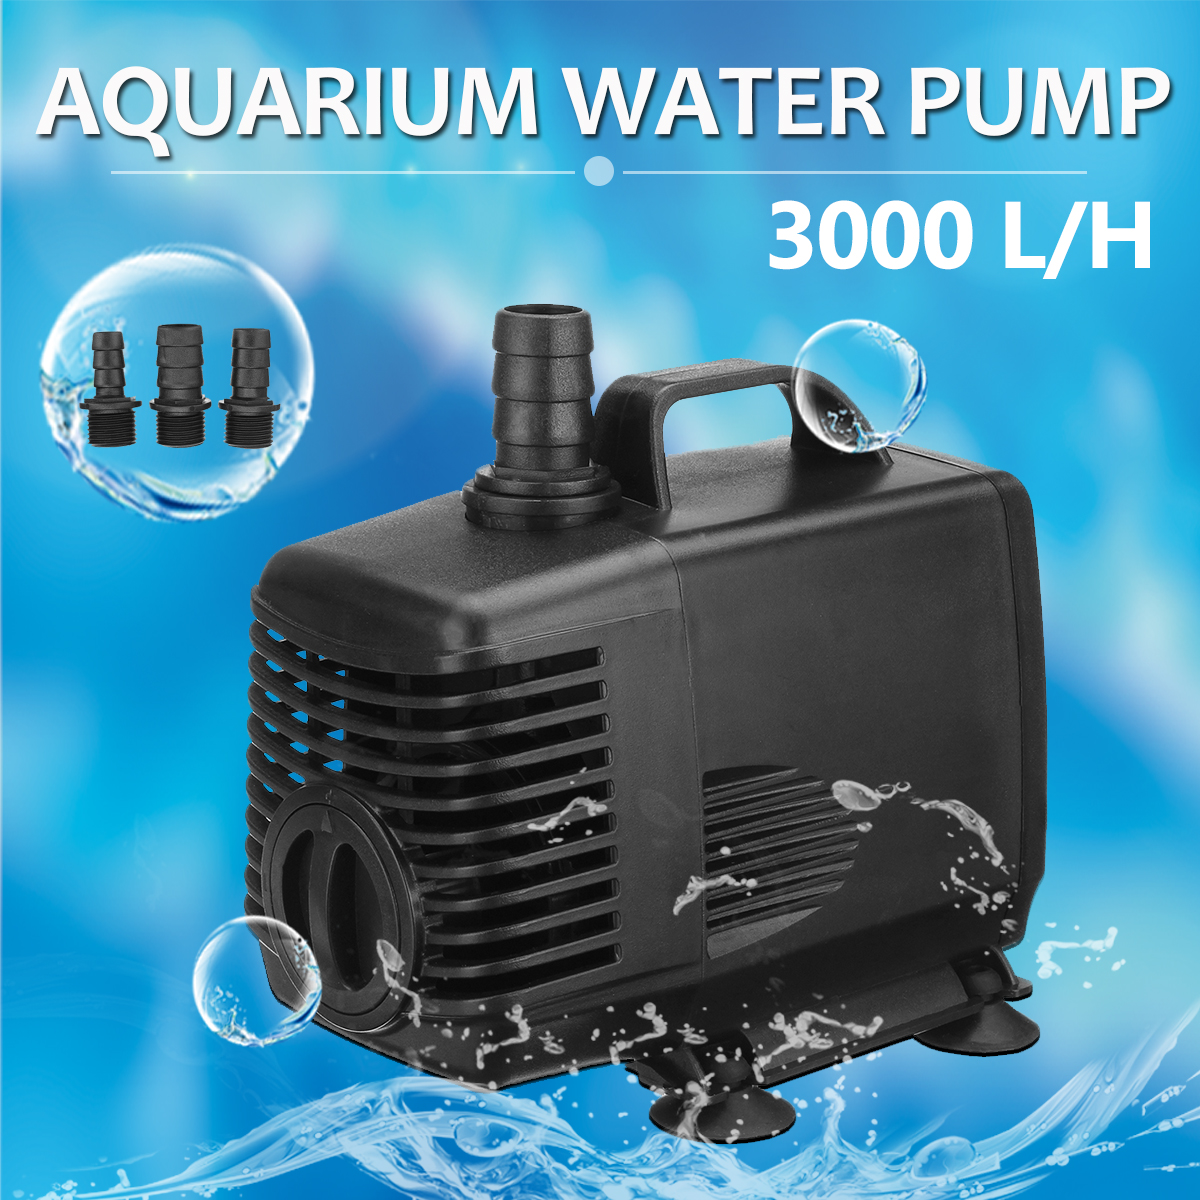 45W 3000 L/H 220-240V Aquarium Water Pump for Fish Tank Pond Submersible Fountain Water Pump Filter+ 3 Nozzles все цены